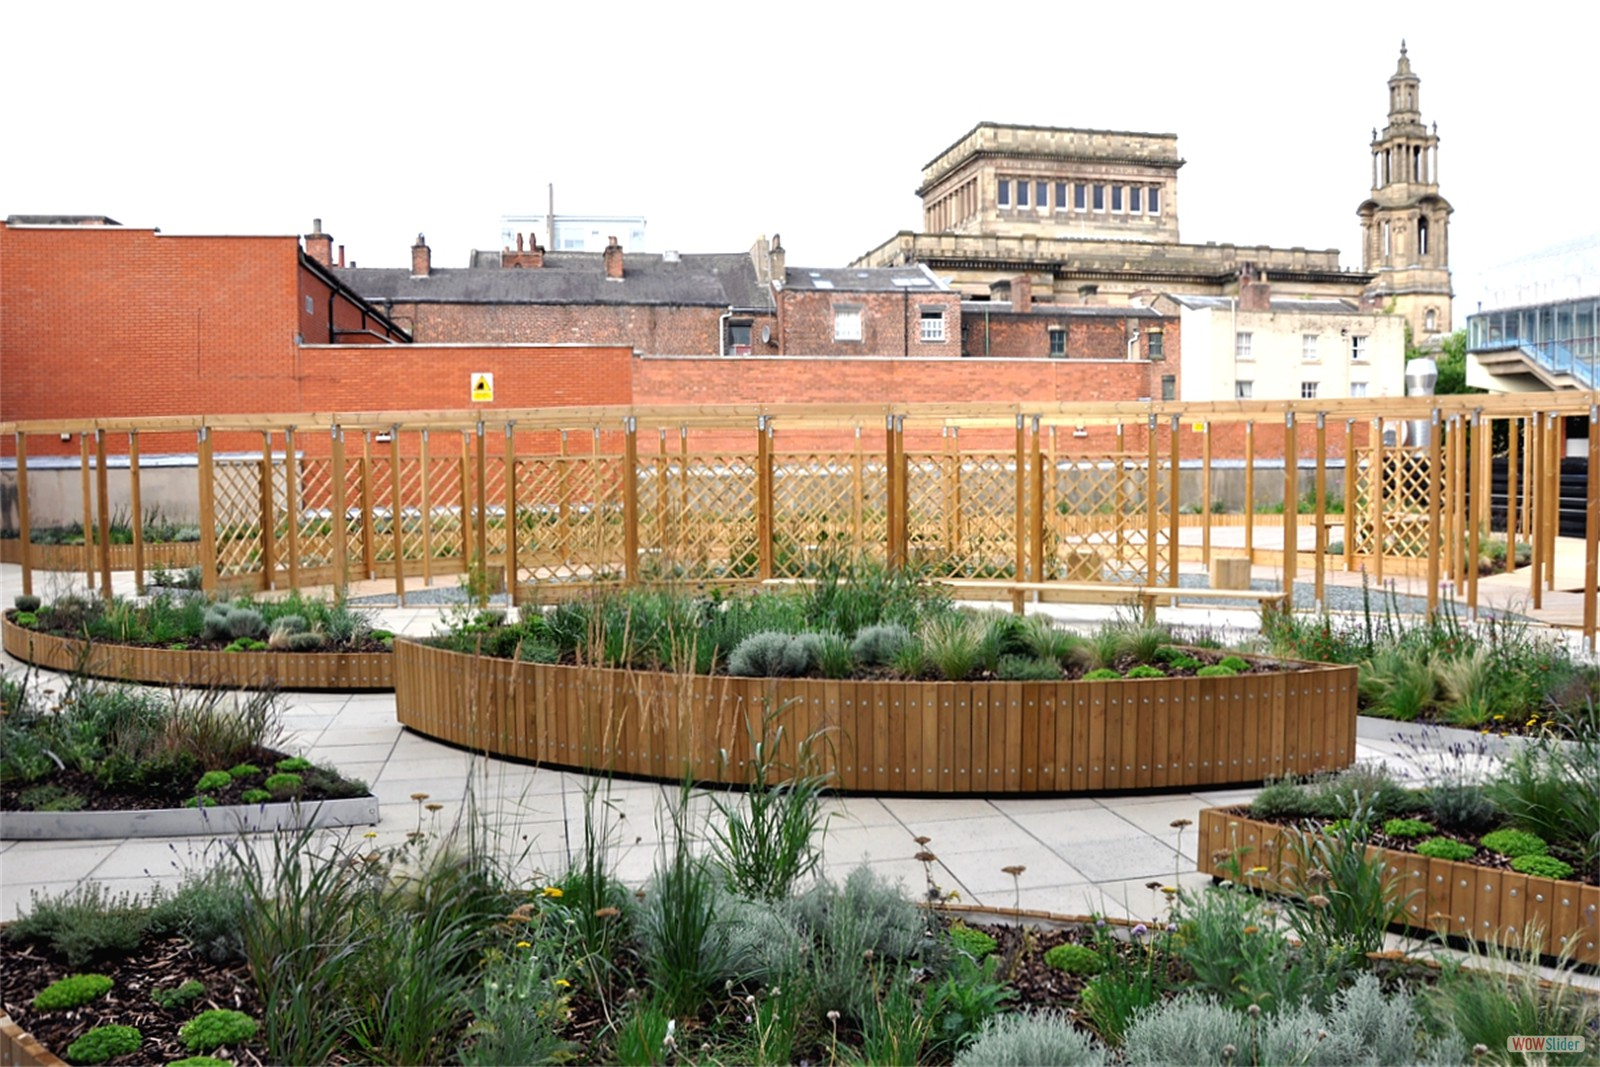 c124a - Empire House, Preston, roof garden furniture